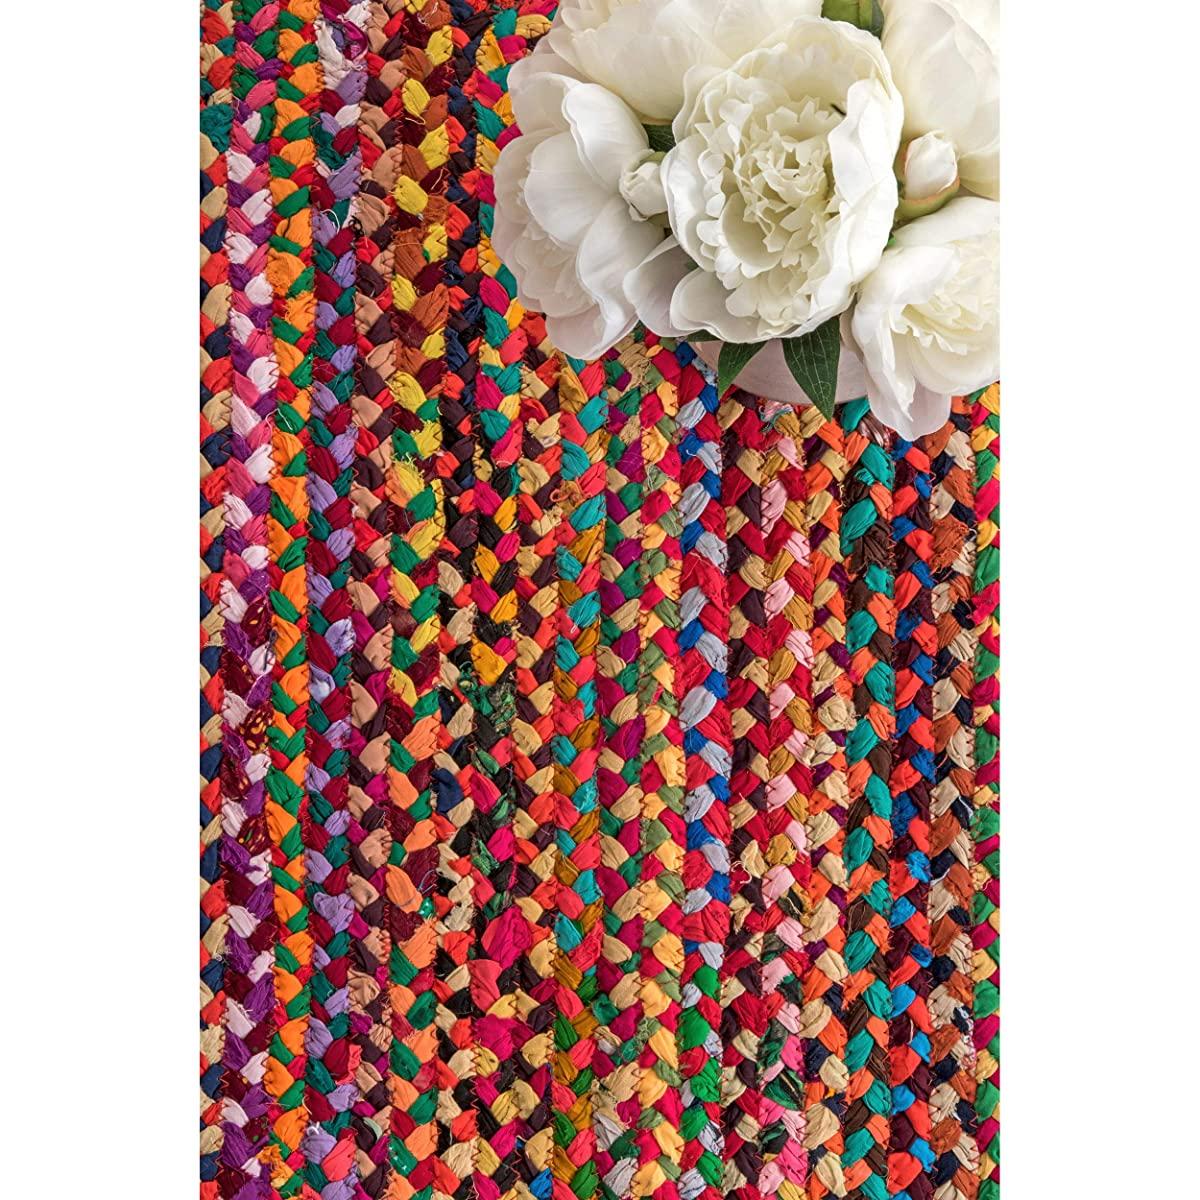 nuLOOM Hand Braided Bohemian Colorful Cotton Area Rug, Multi, 9 x 12